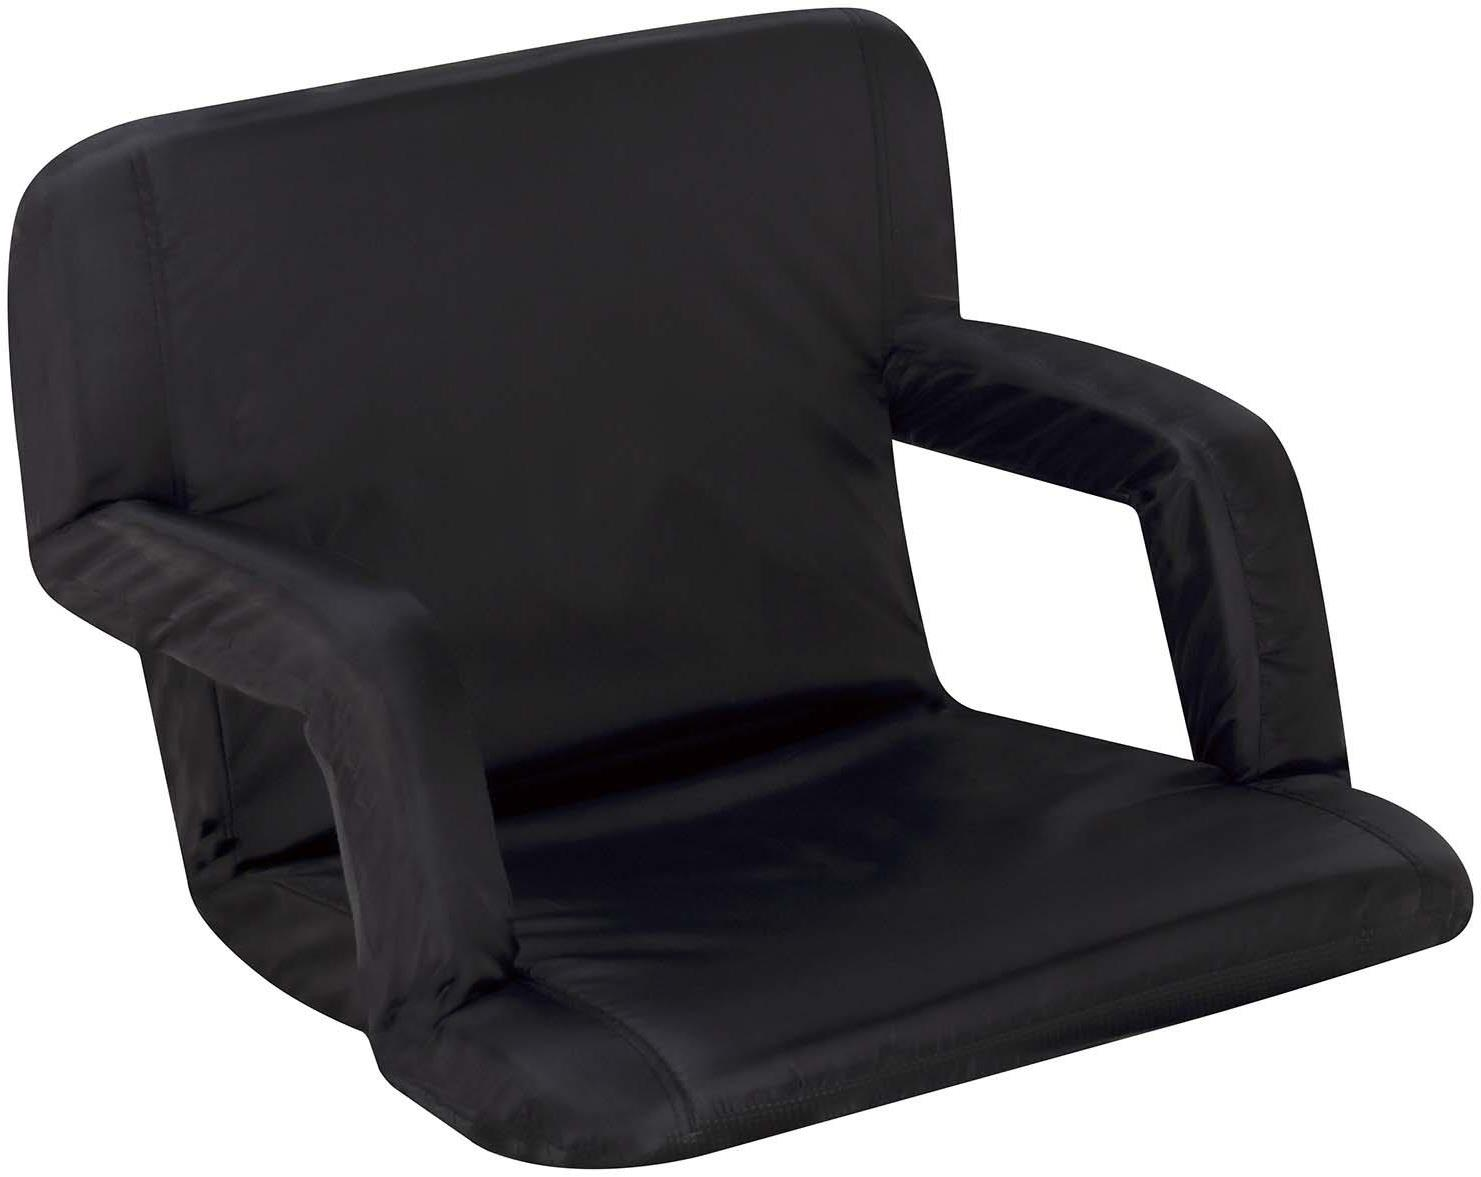 Naomi Home Venice Portable Reclining Seat with Armrest